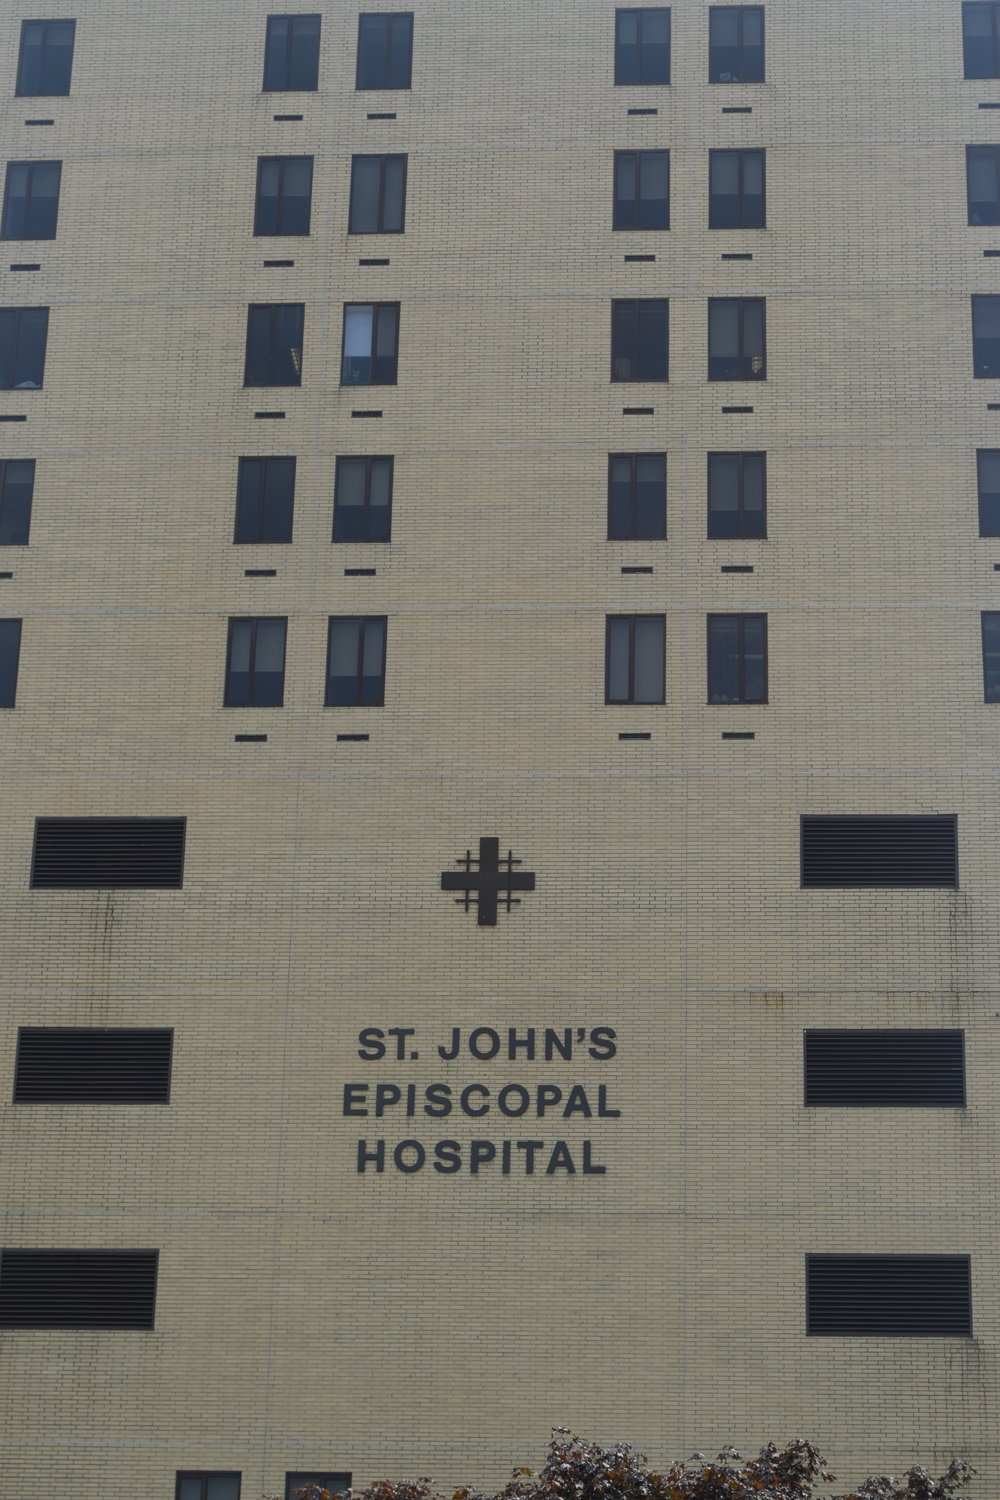 For the third consecutive year, St. John's Episcopal Hospital received the American Heart Association and American Stroke Association's Get With The Guidelines®-Stroke Gold Plus Achievement Award.